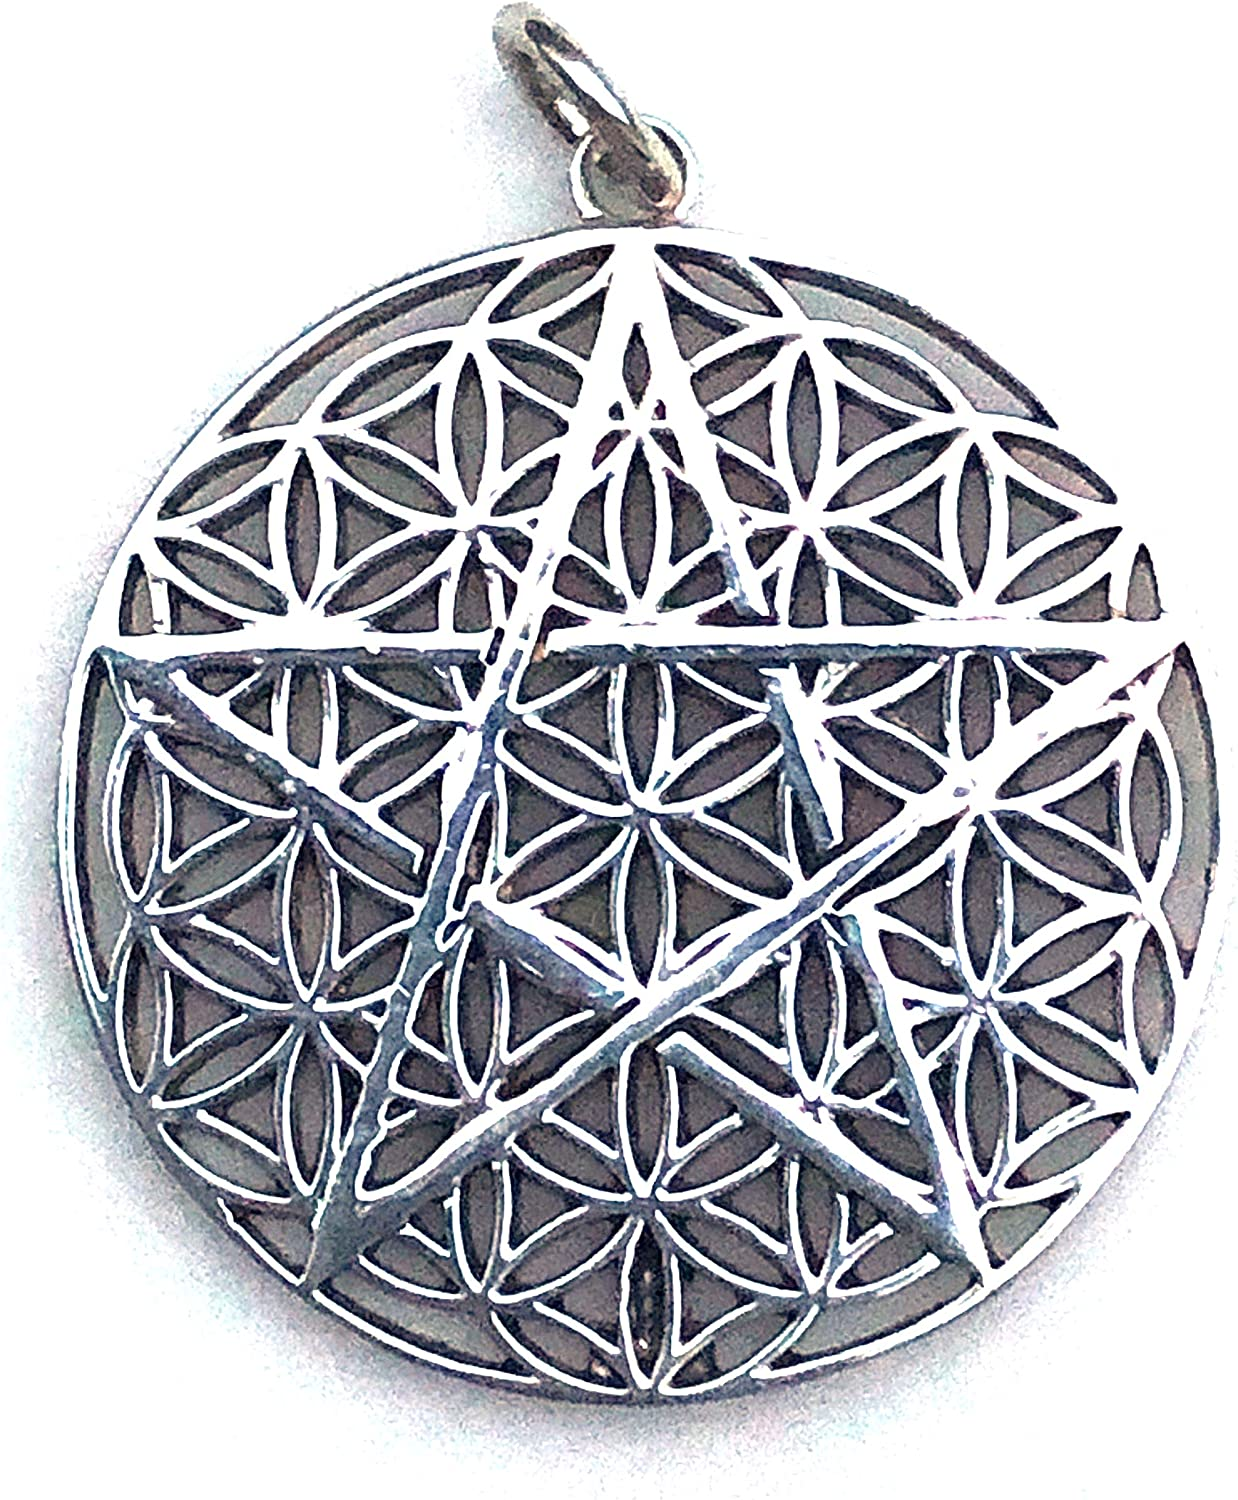 Pentagram Pendant |Spiritual Jewelry for Men and Women 30 mm 9.2 GMS Sterling Silver Earth Solutions Flower of Life